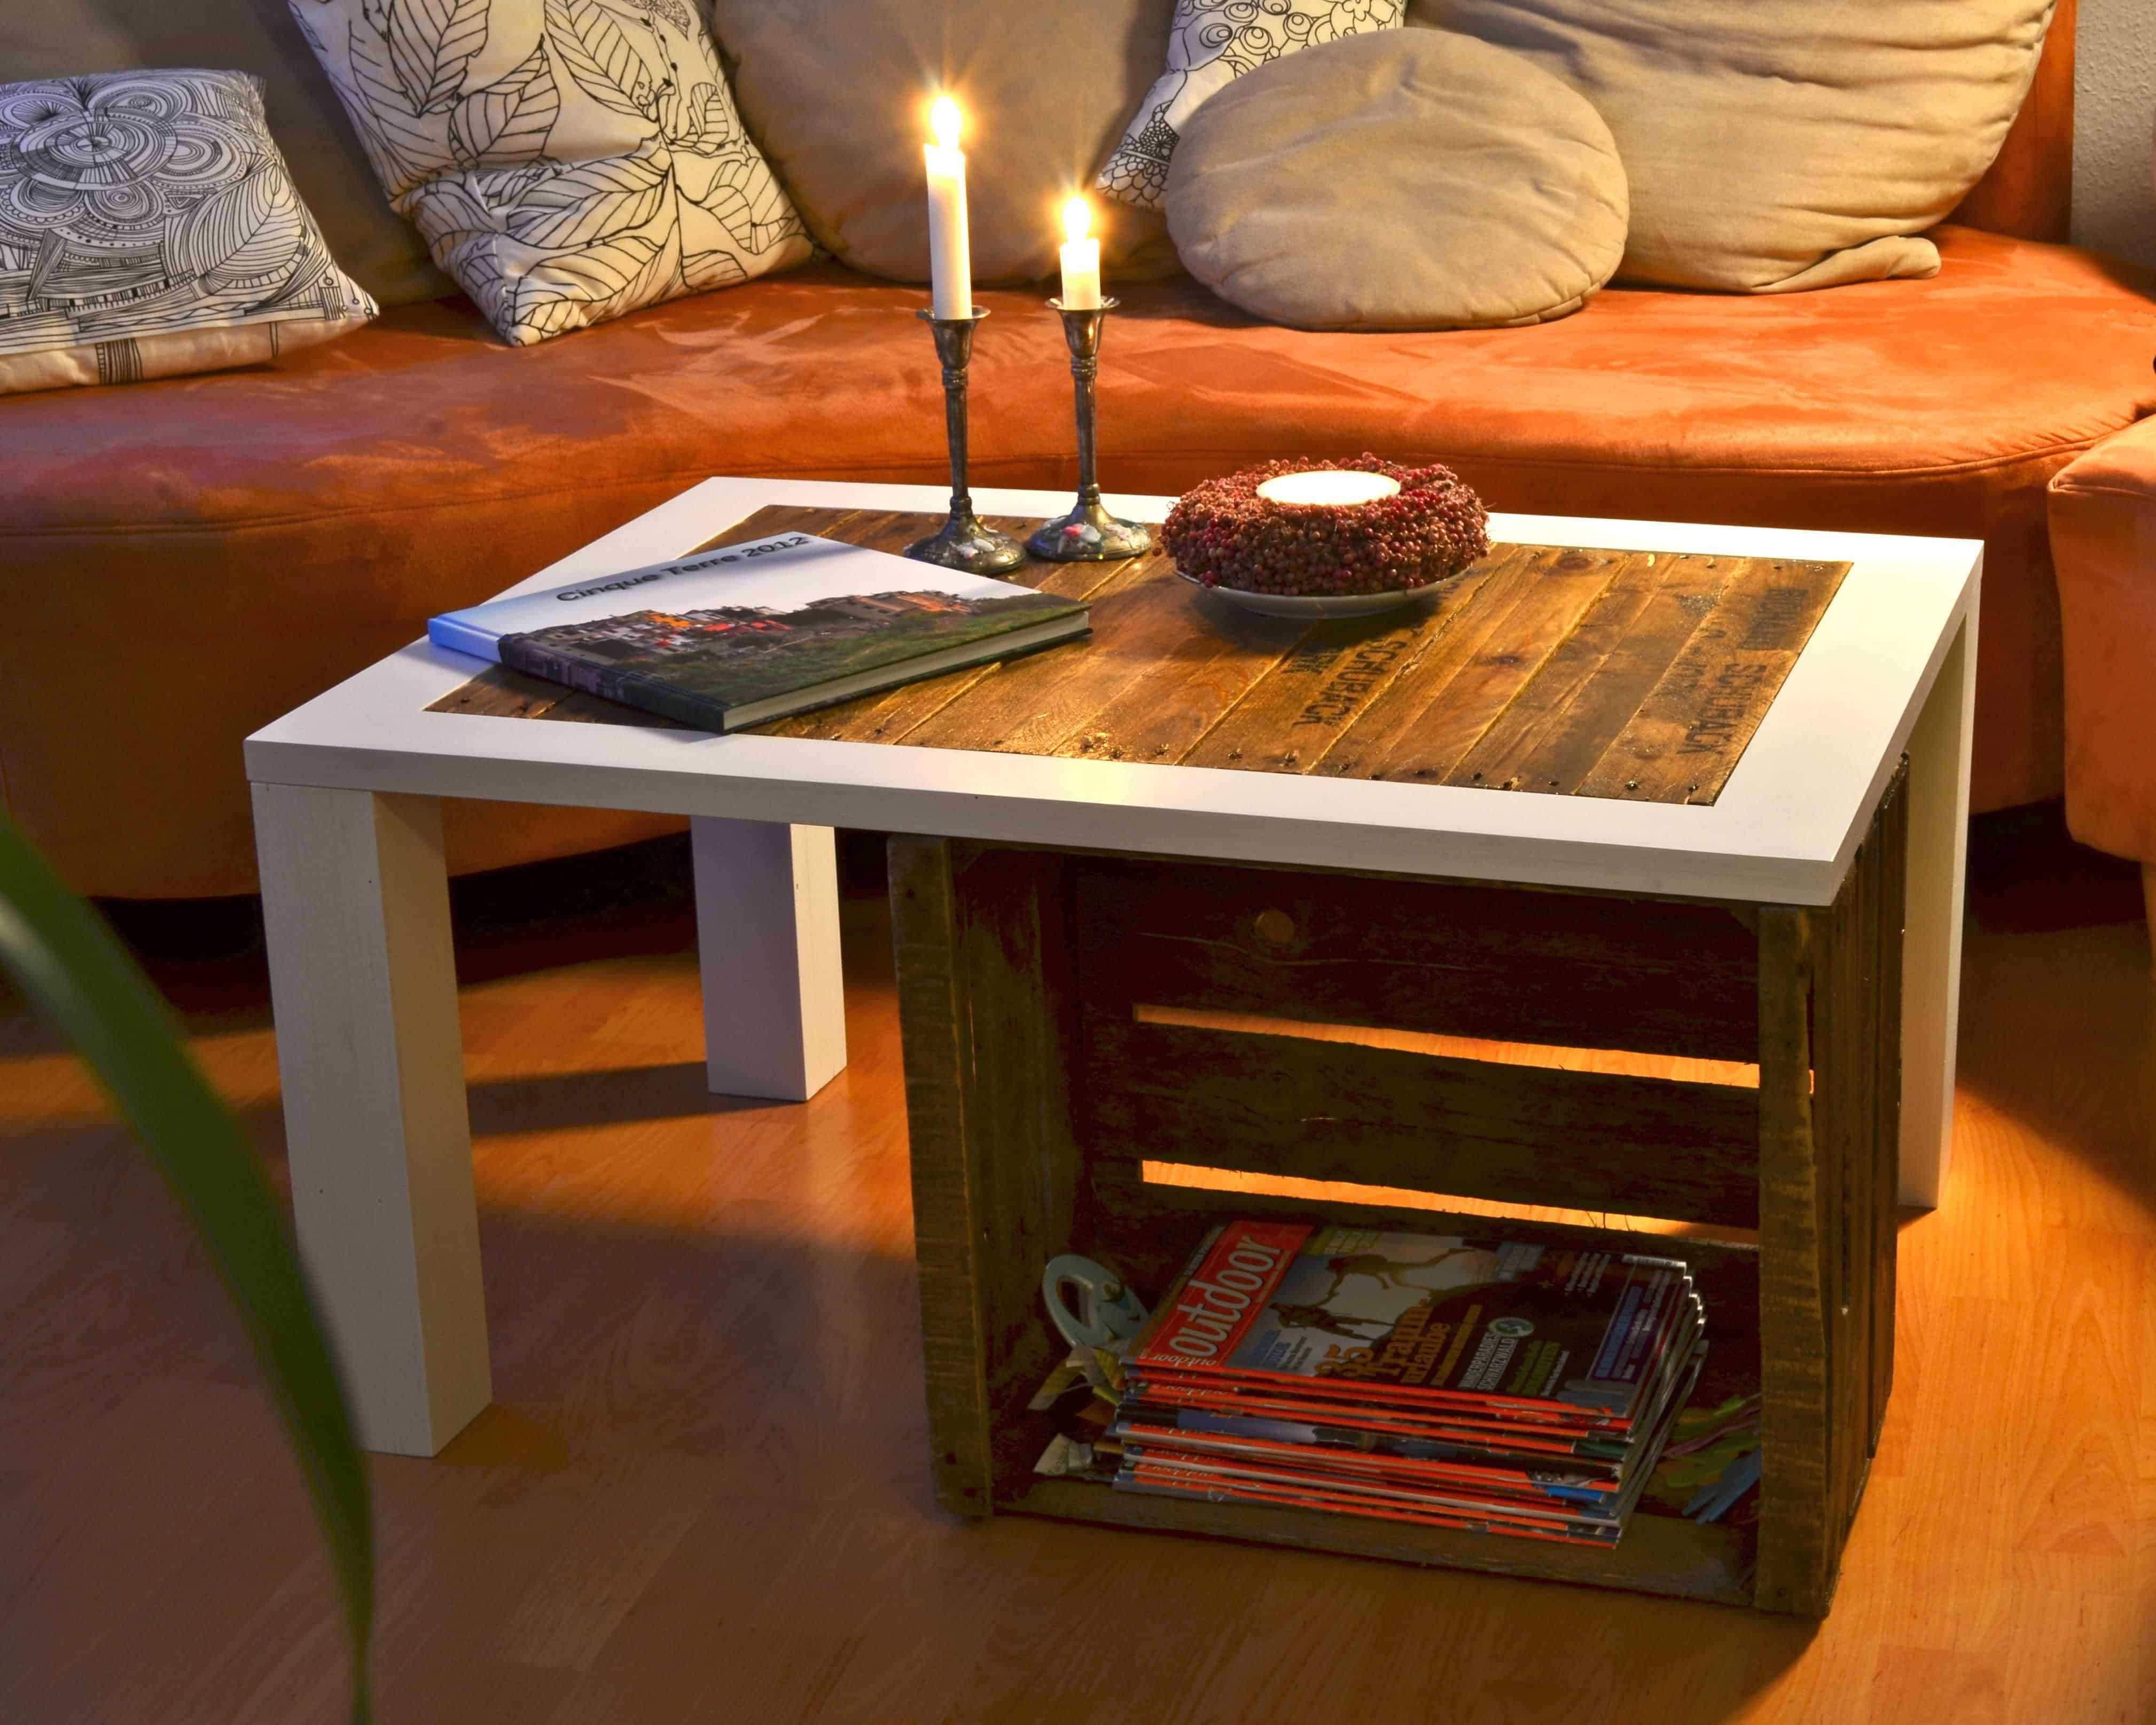 Wooden Crates Coffee Table Recycled Ideas Recyclart